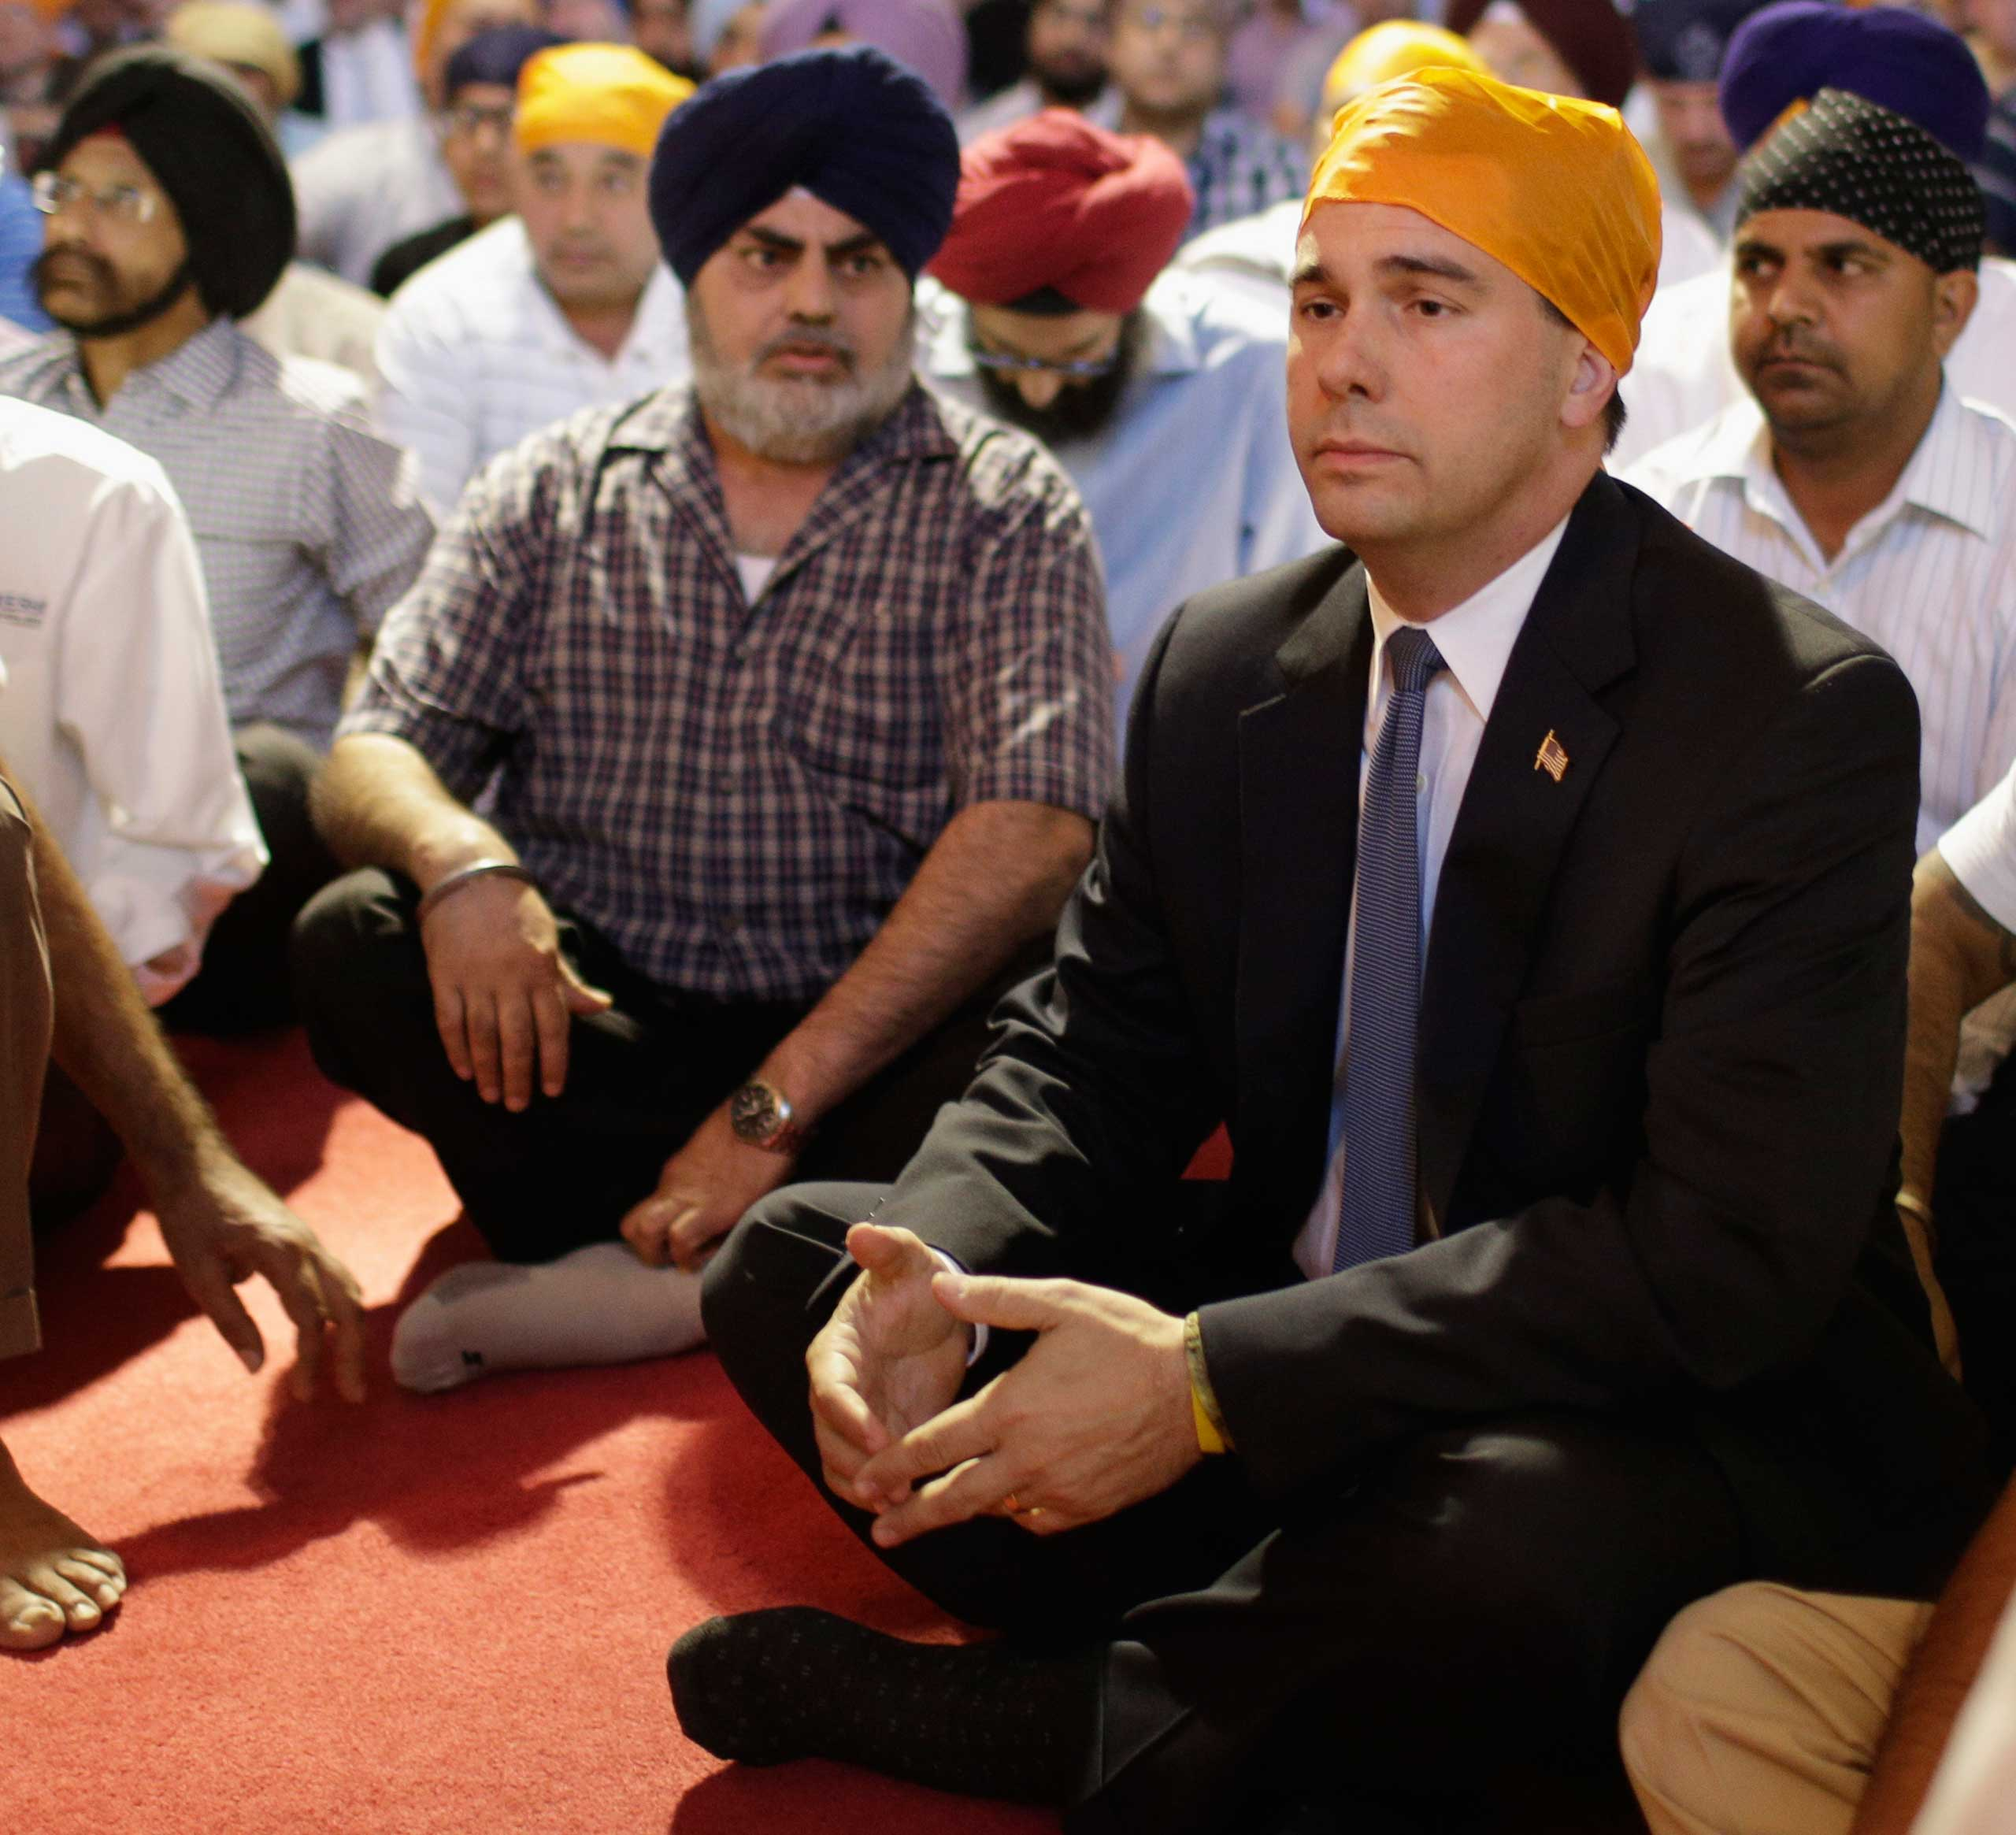 Wisconsin Governor Scott Walker attends a prayer service at the Sikh Temple in Brookfield, Wis., on August 6, 2012.